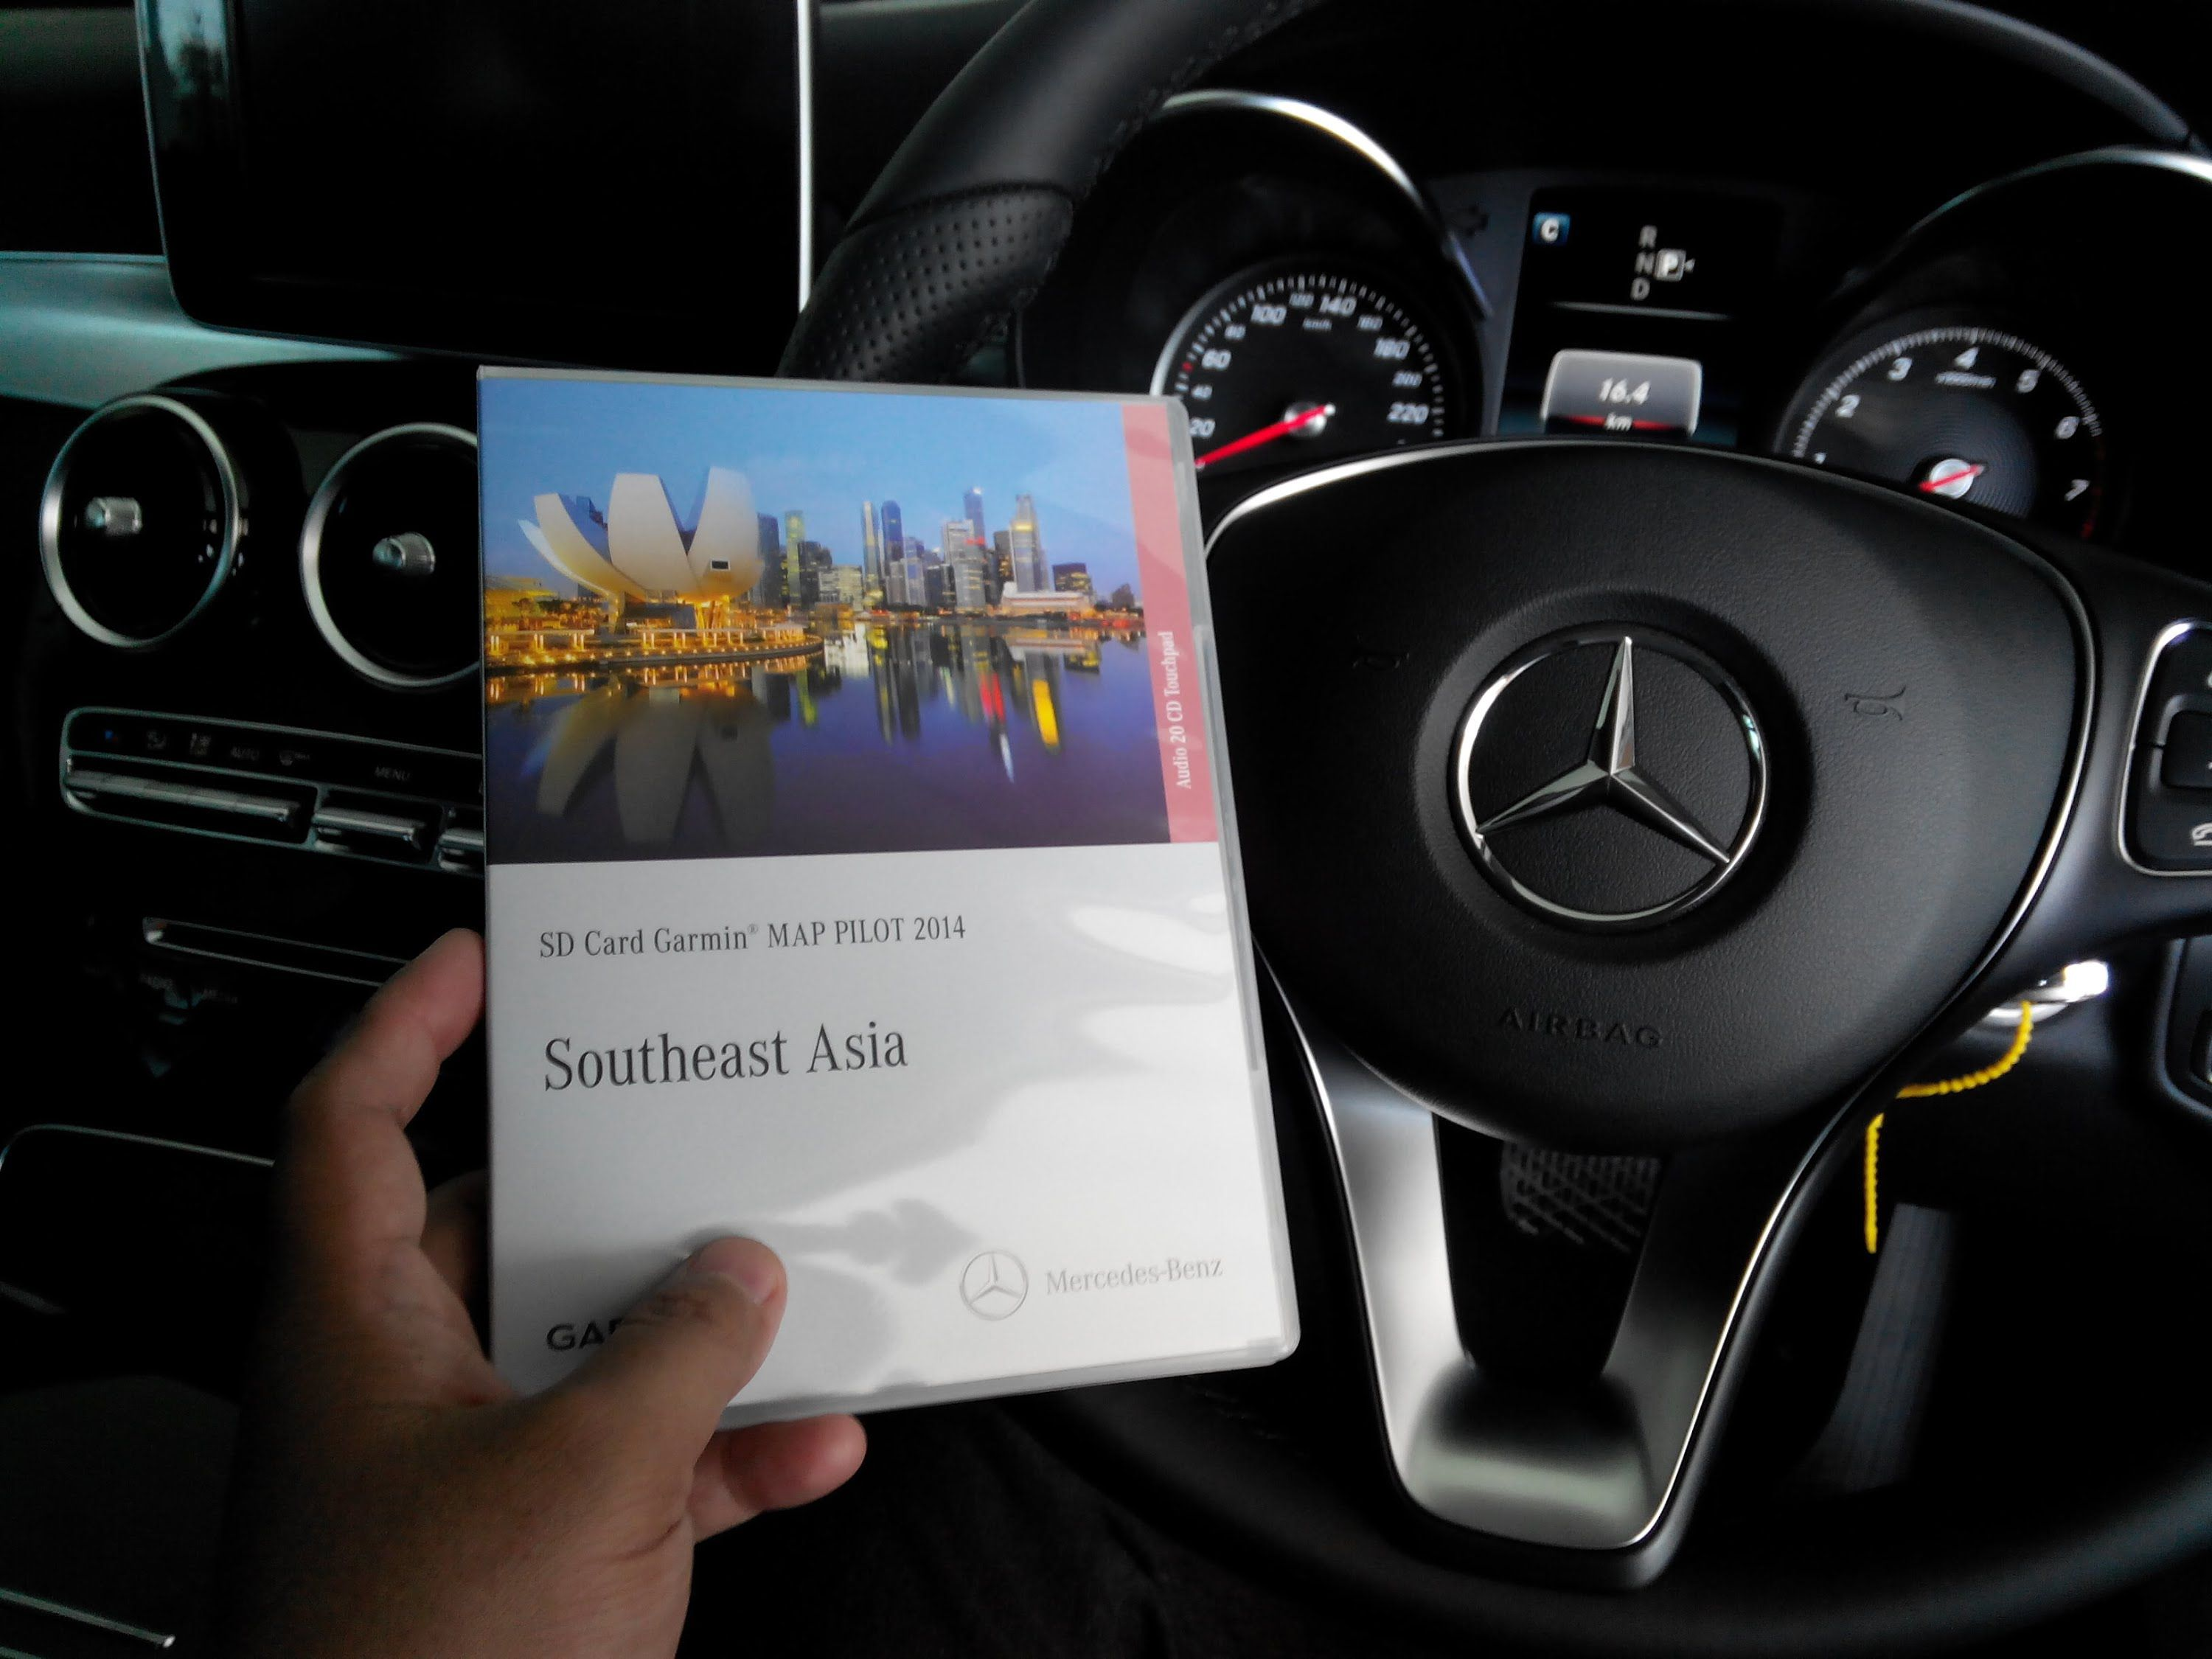 how to install garmin sdcard map pilot for new mercedes c 200 ava